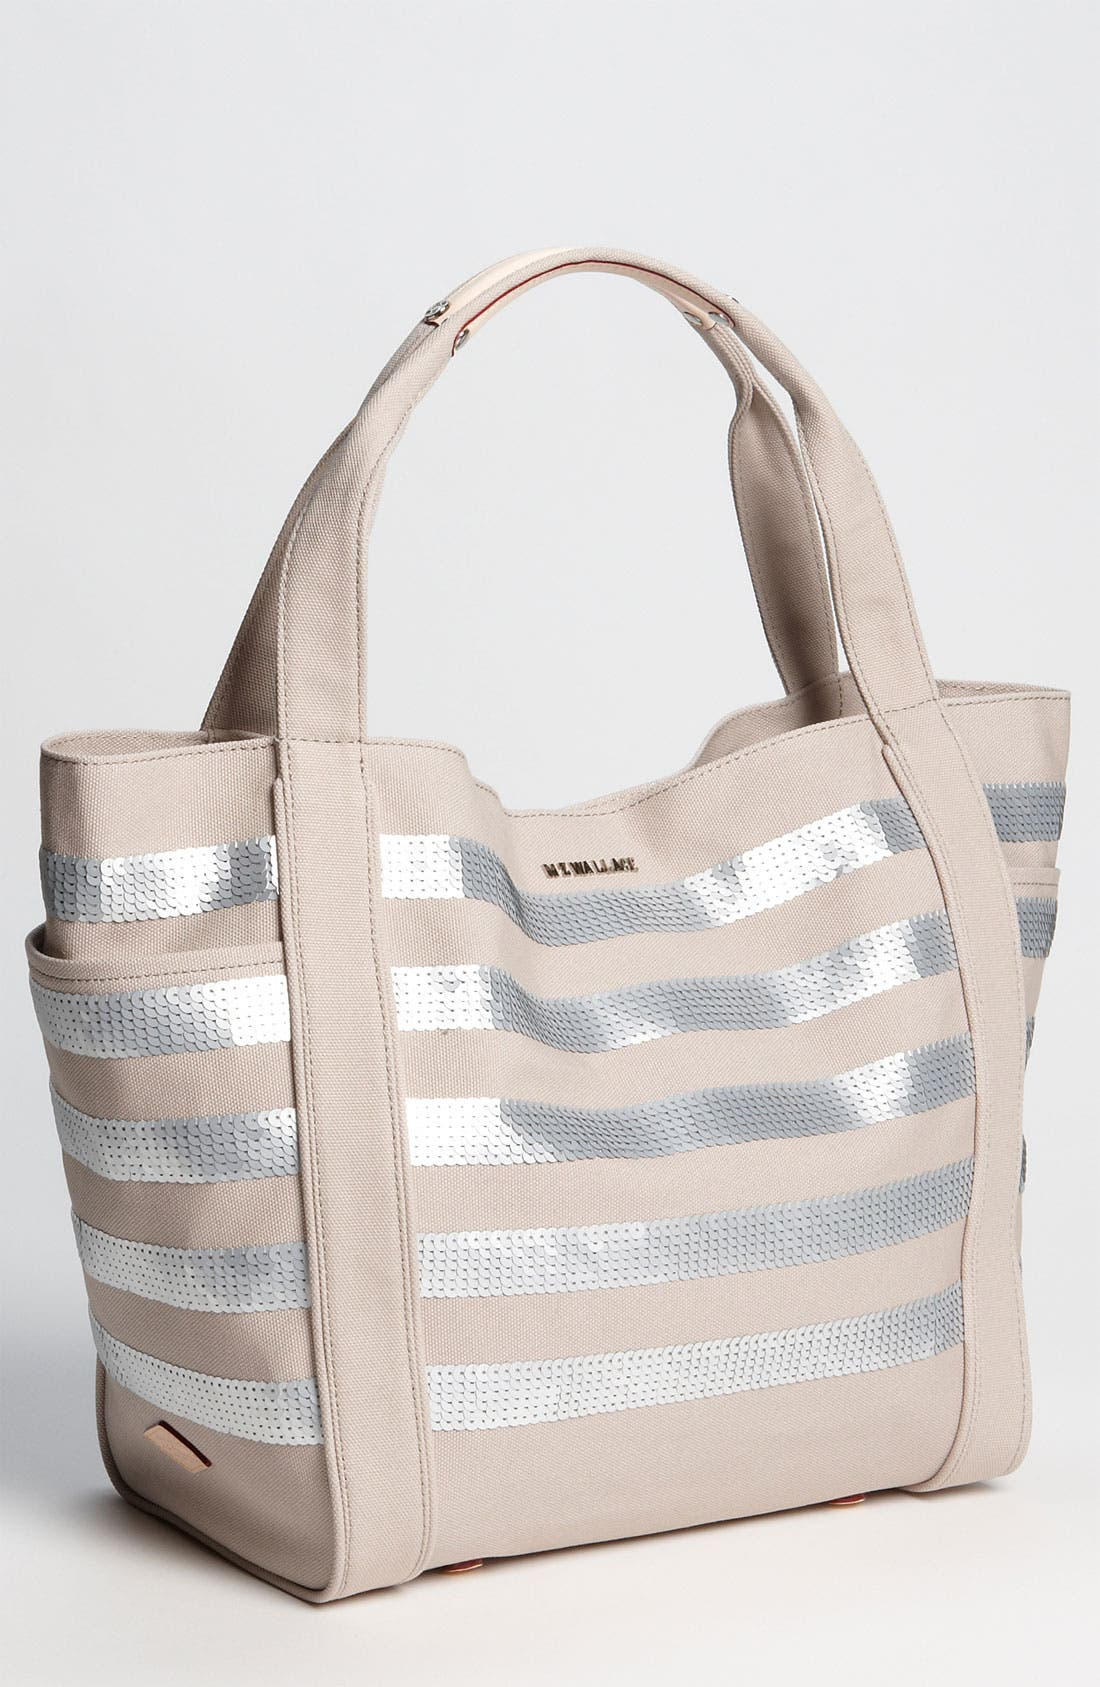 Alternate Image 1 Selected - MZ Wallace 'Ava' Sequined Canvas Tote